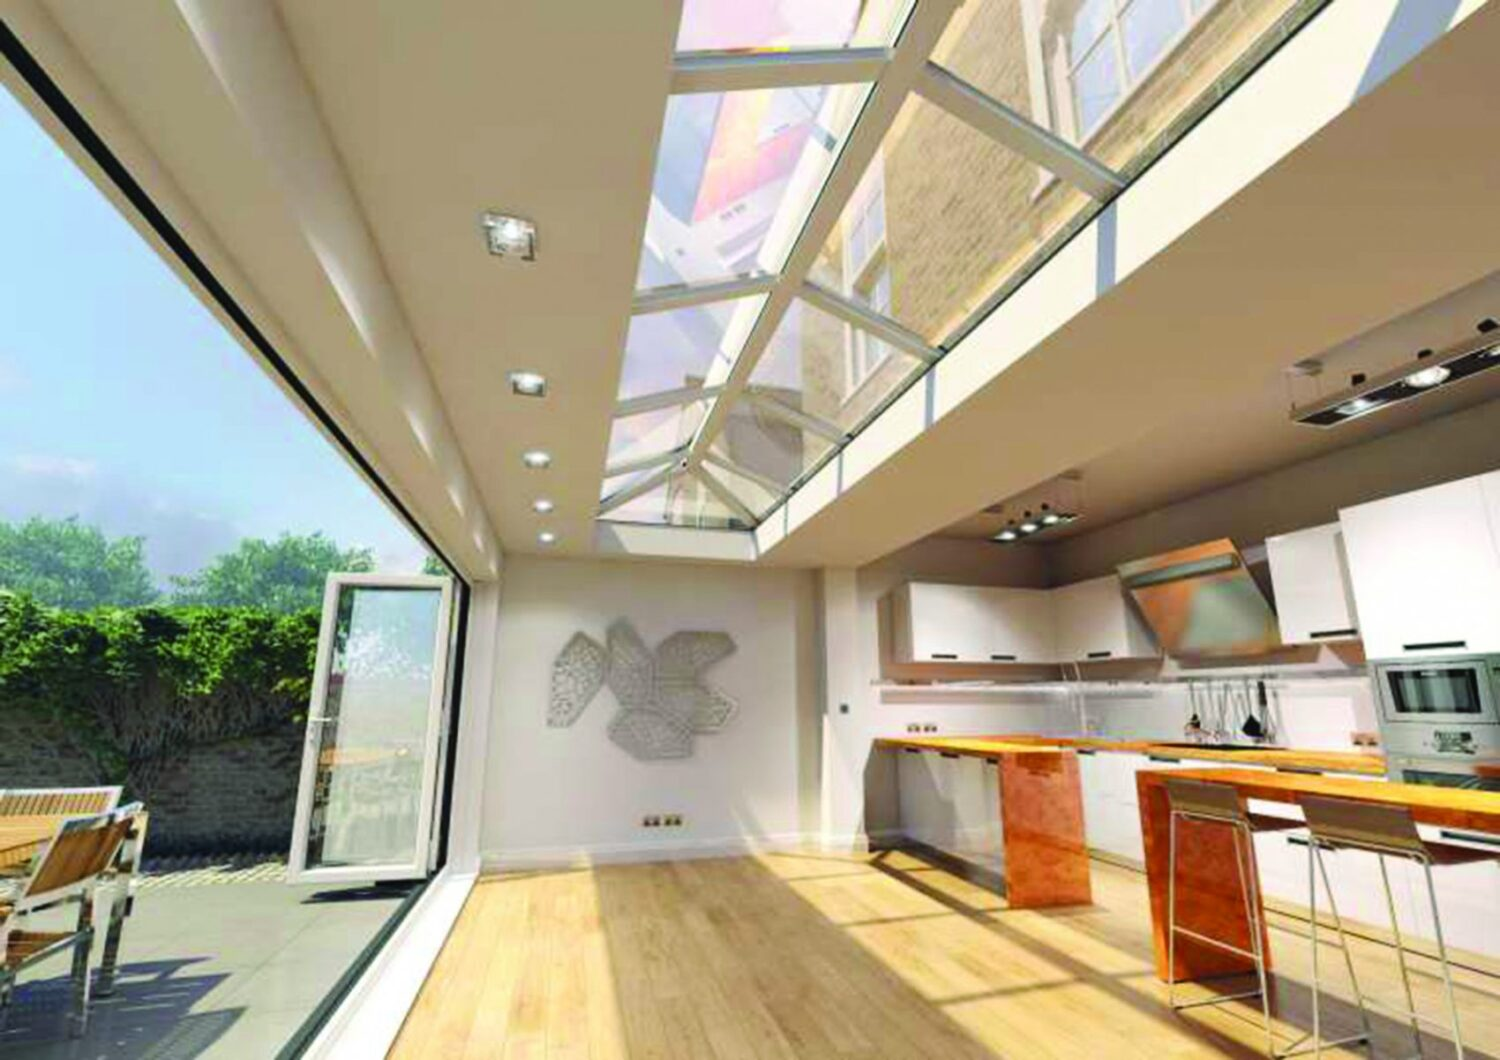 Skypod Roofing from JSS Installations